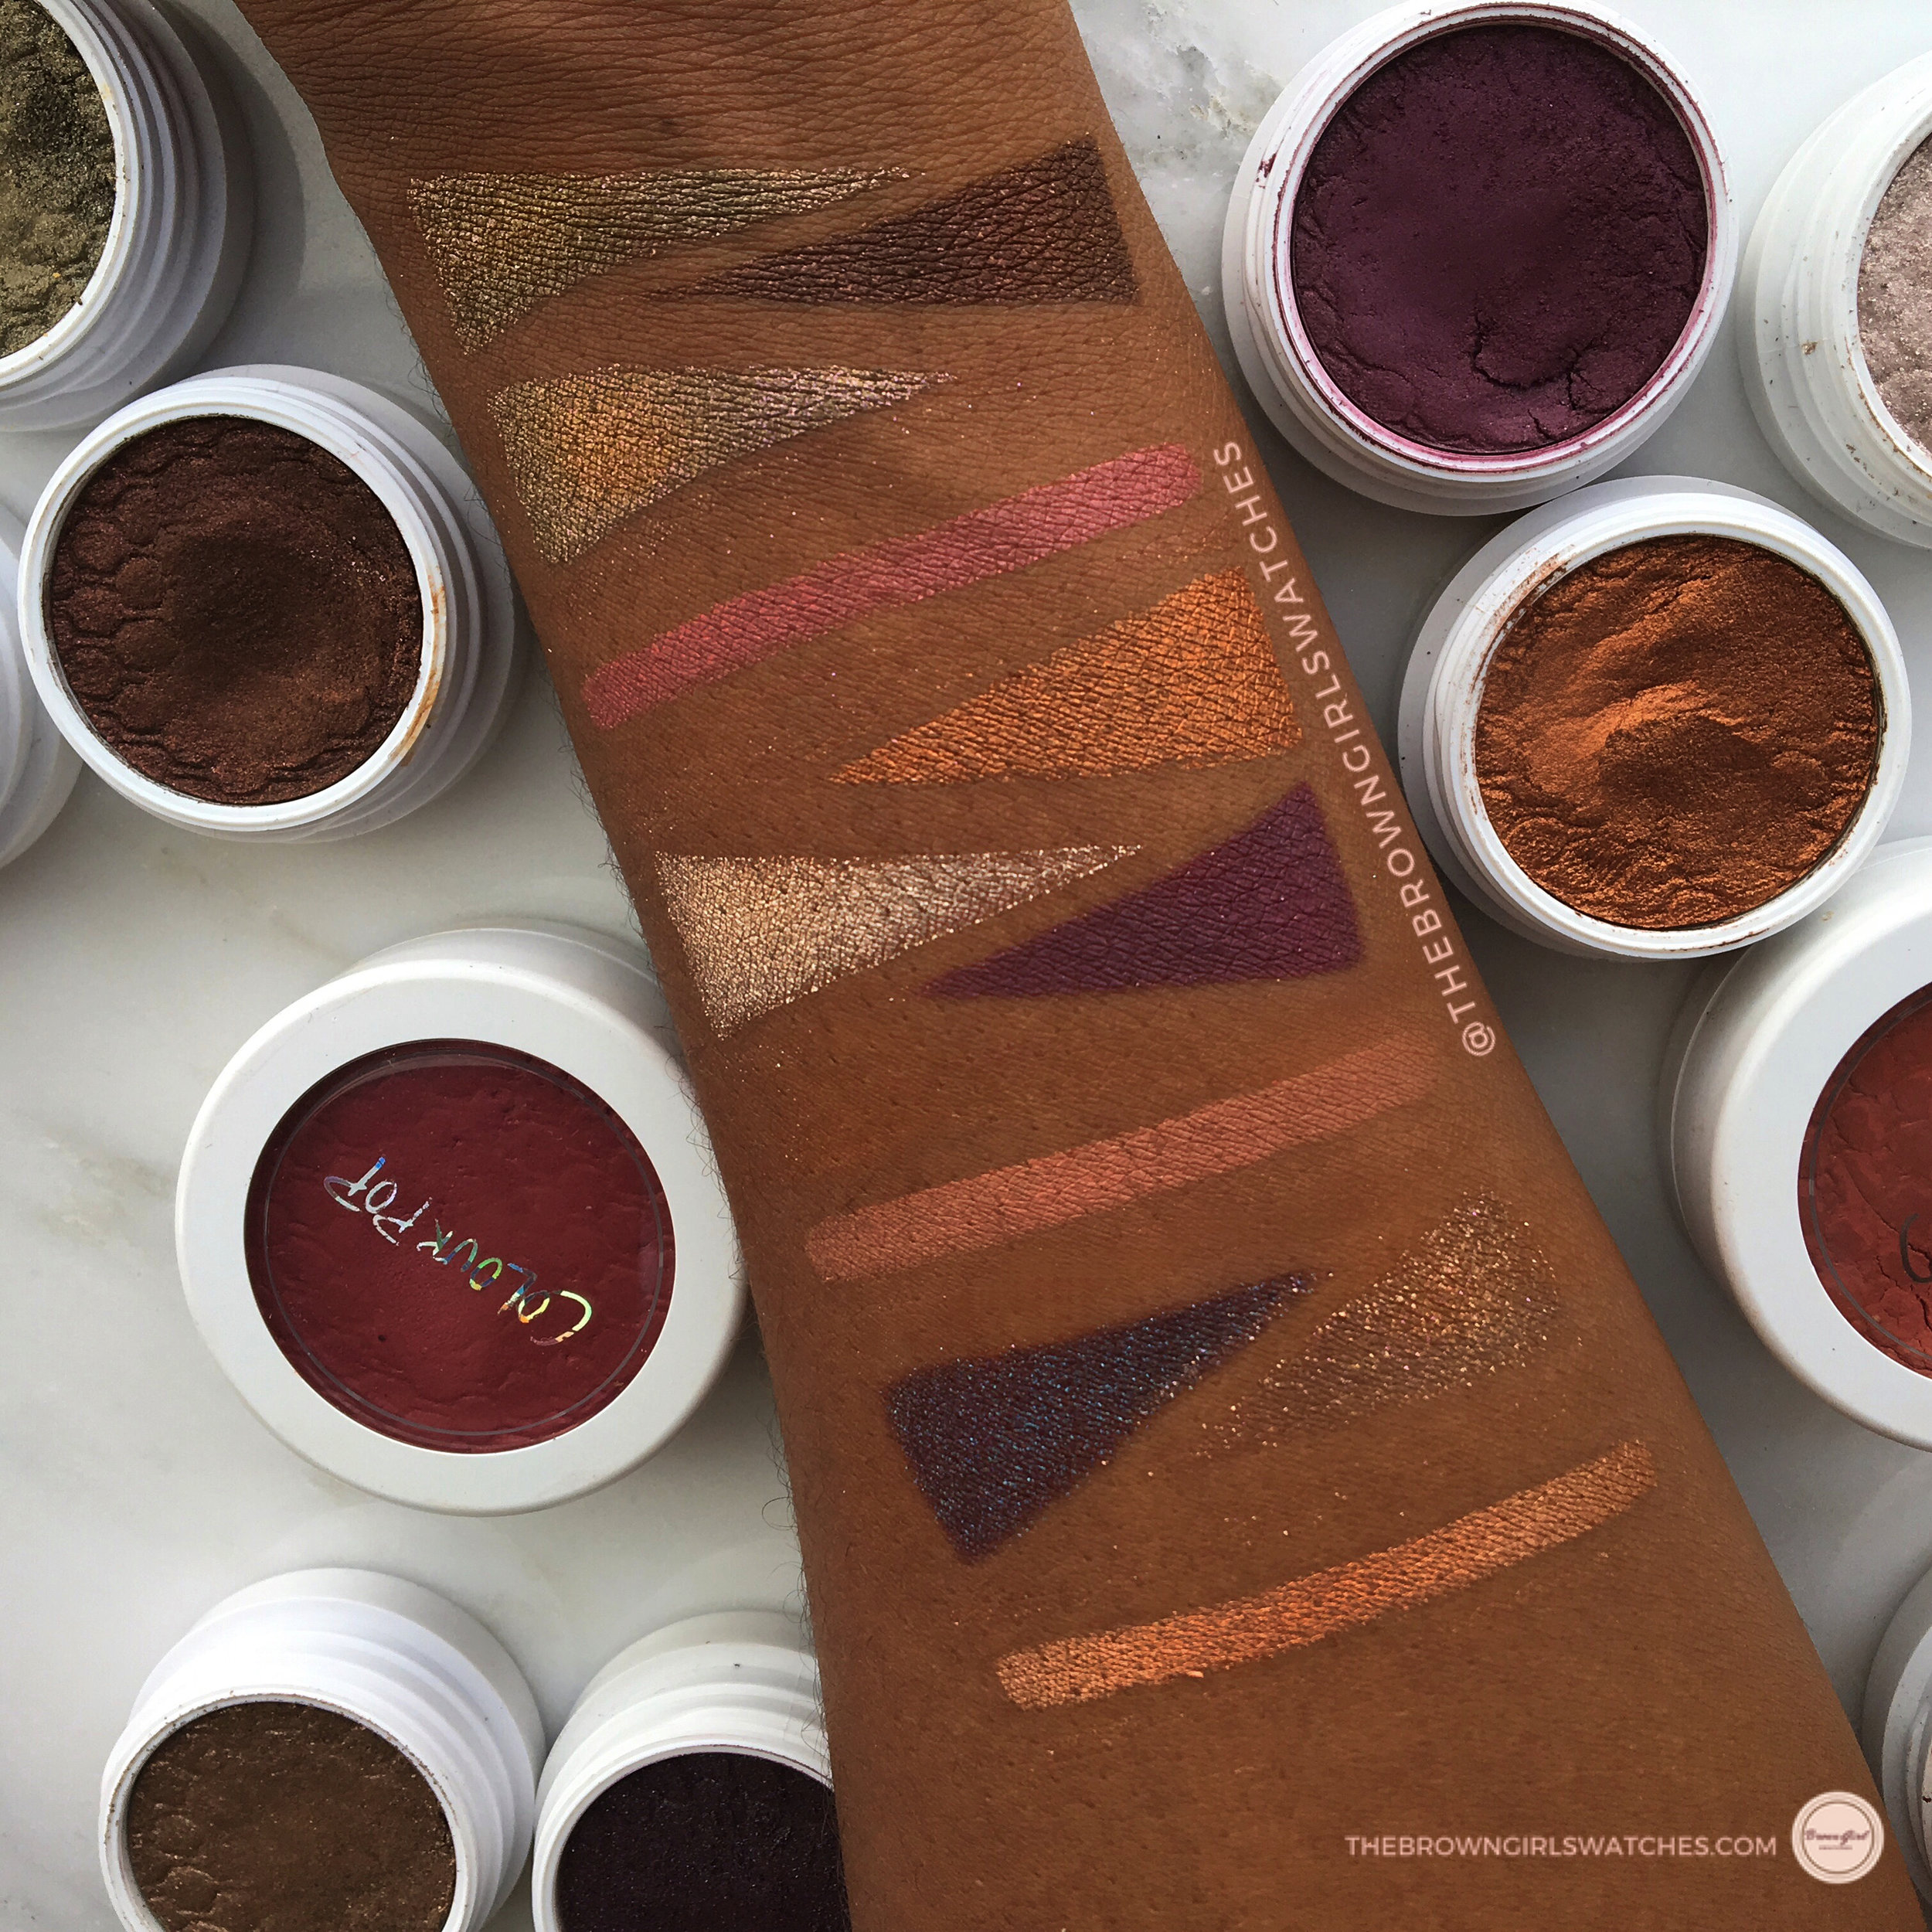 Swatches from top to bottom:HAMMERED, MOONING, SO QUICHE, CHEERIO, GAMEFACE, I HEART THIS, MOONING, FLUSH'D, BAE, NILLIONAIRE, and AVALON.